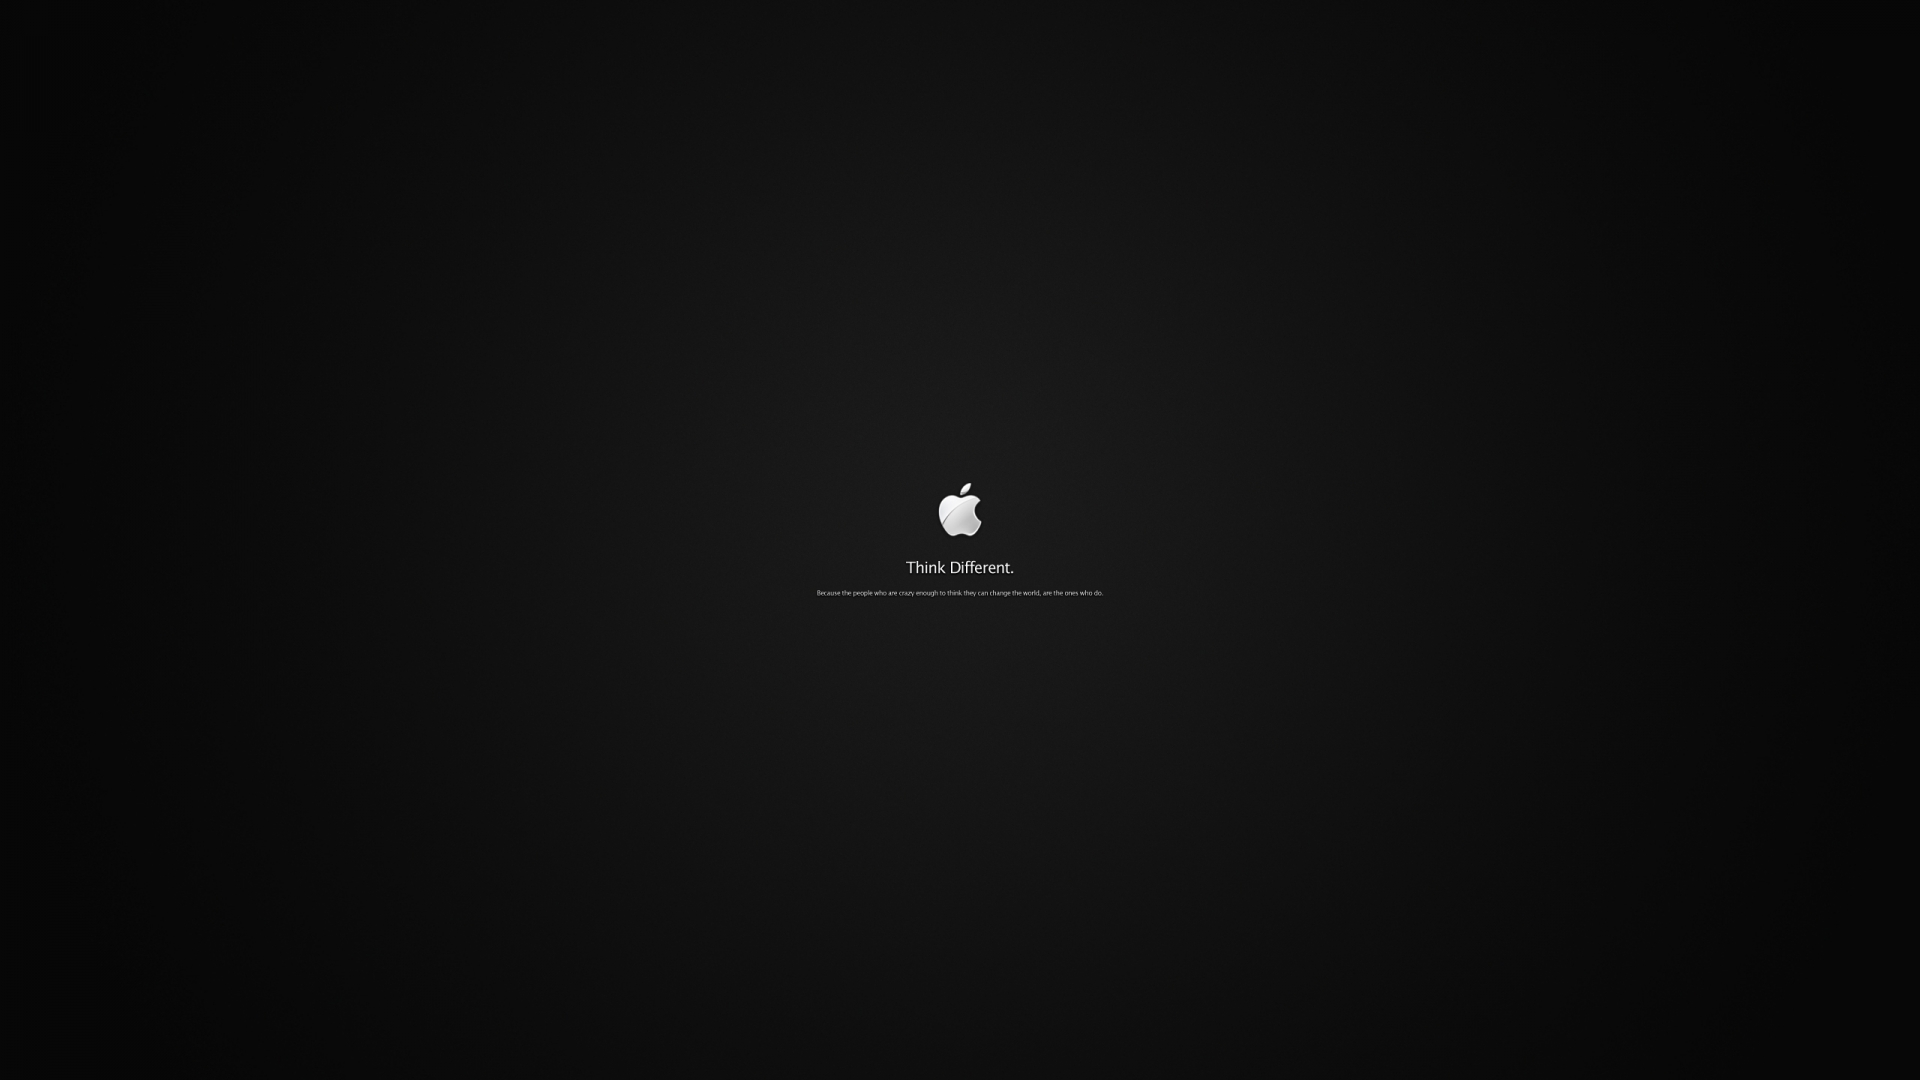 Tiny Apple Logo Wallpaper - HD Wallpapers